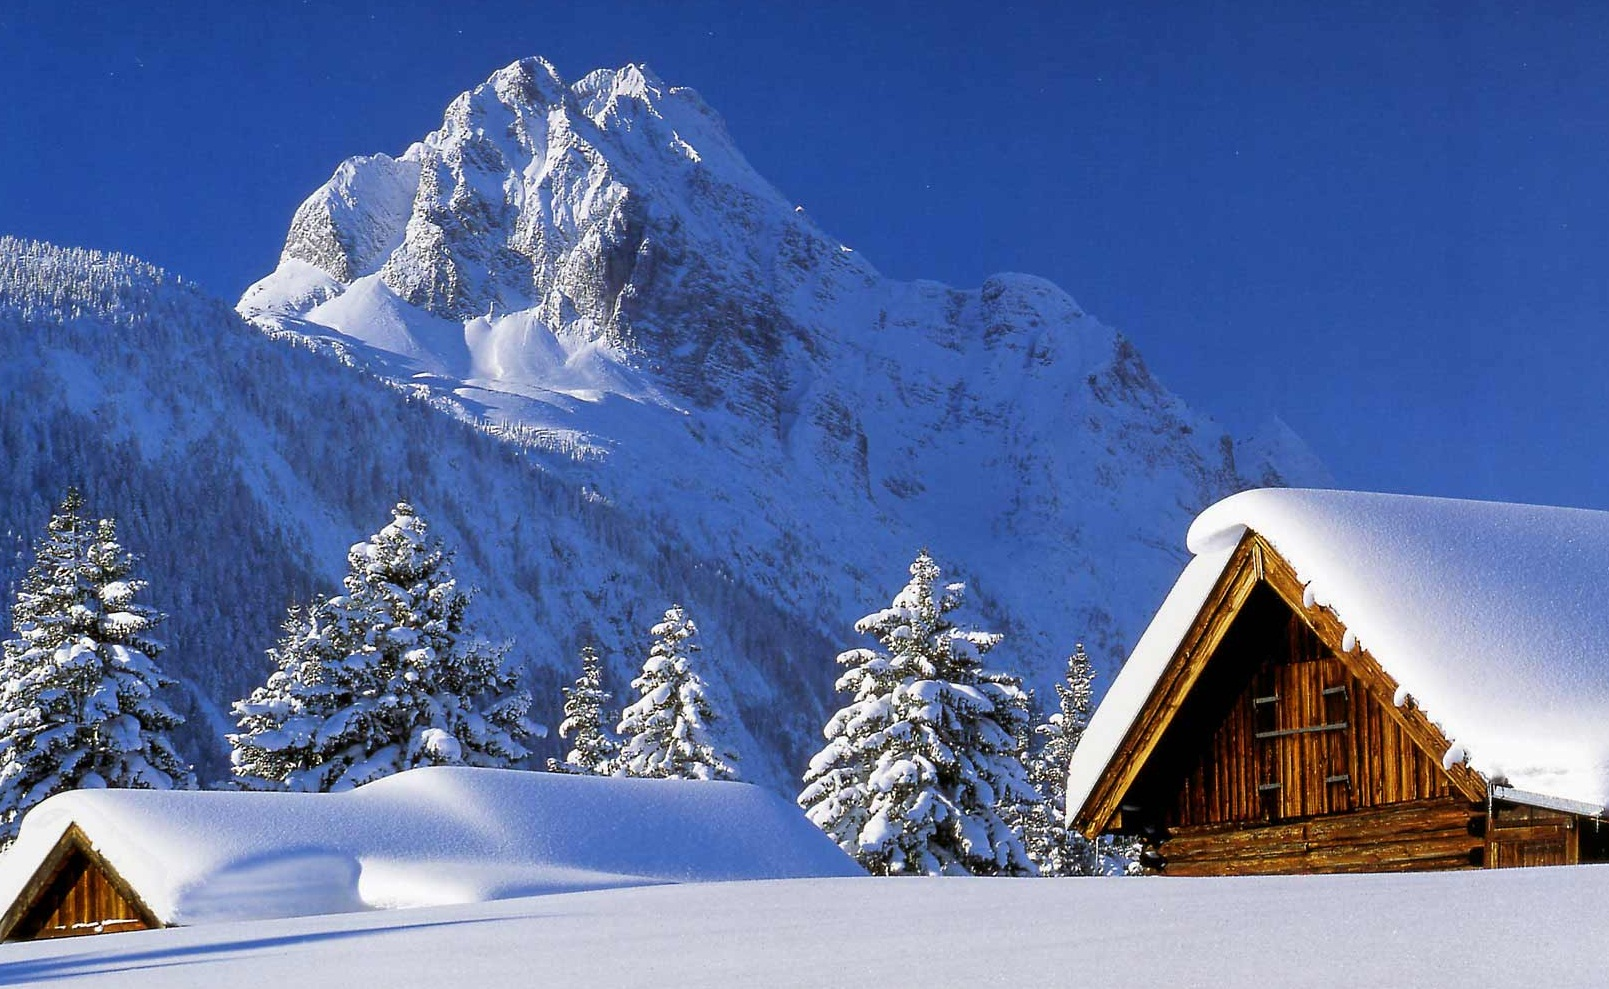 winter-http-www-guadal-be-winter-wp-content-uploads-Winter-snow-in-wallpaper-wp4210716